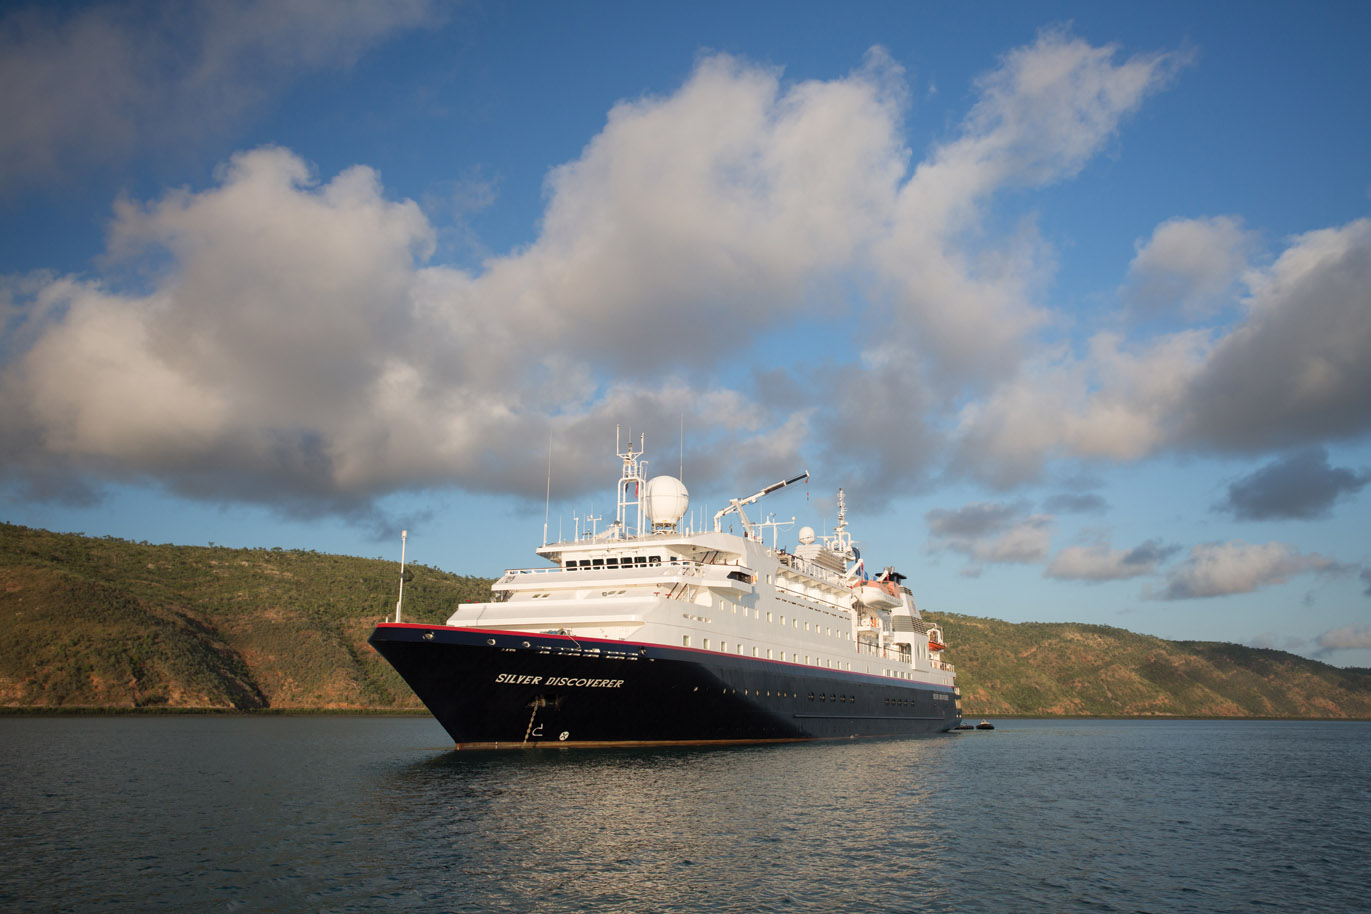 Silver Discoverer, the ship servicing Pearls of the Coral Sea